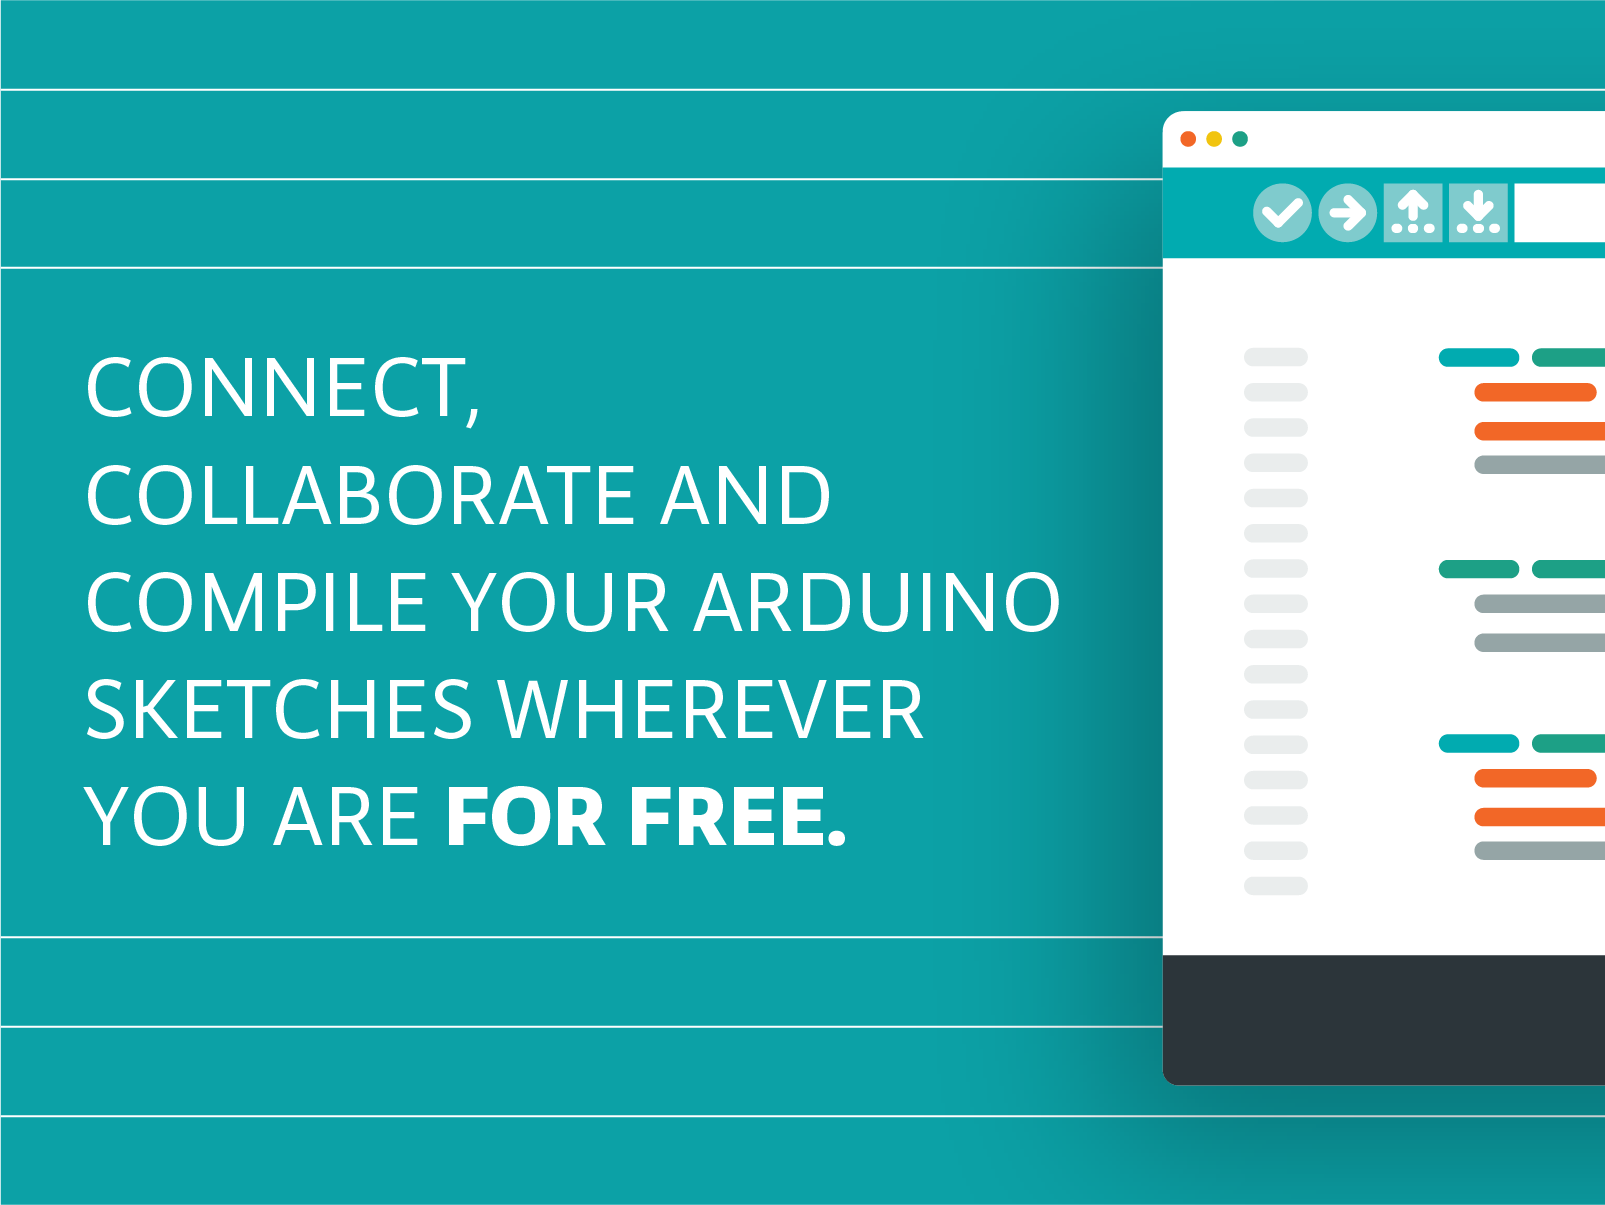 Work remotely with Arduino Create — get a free upgrade now